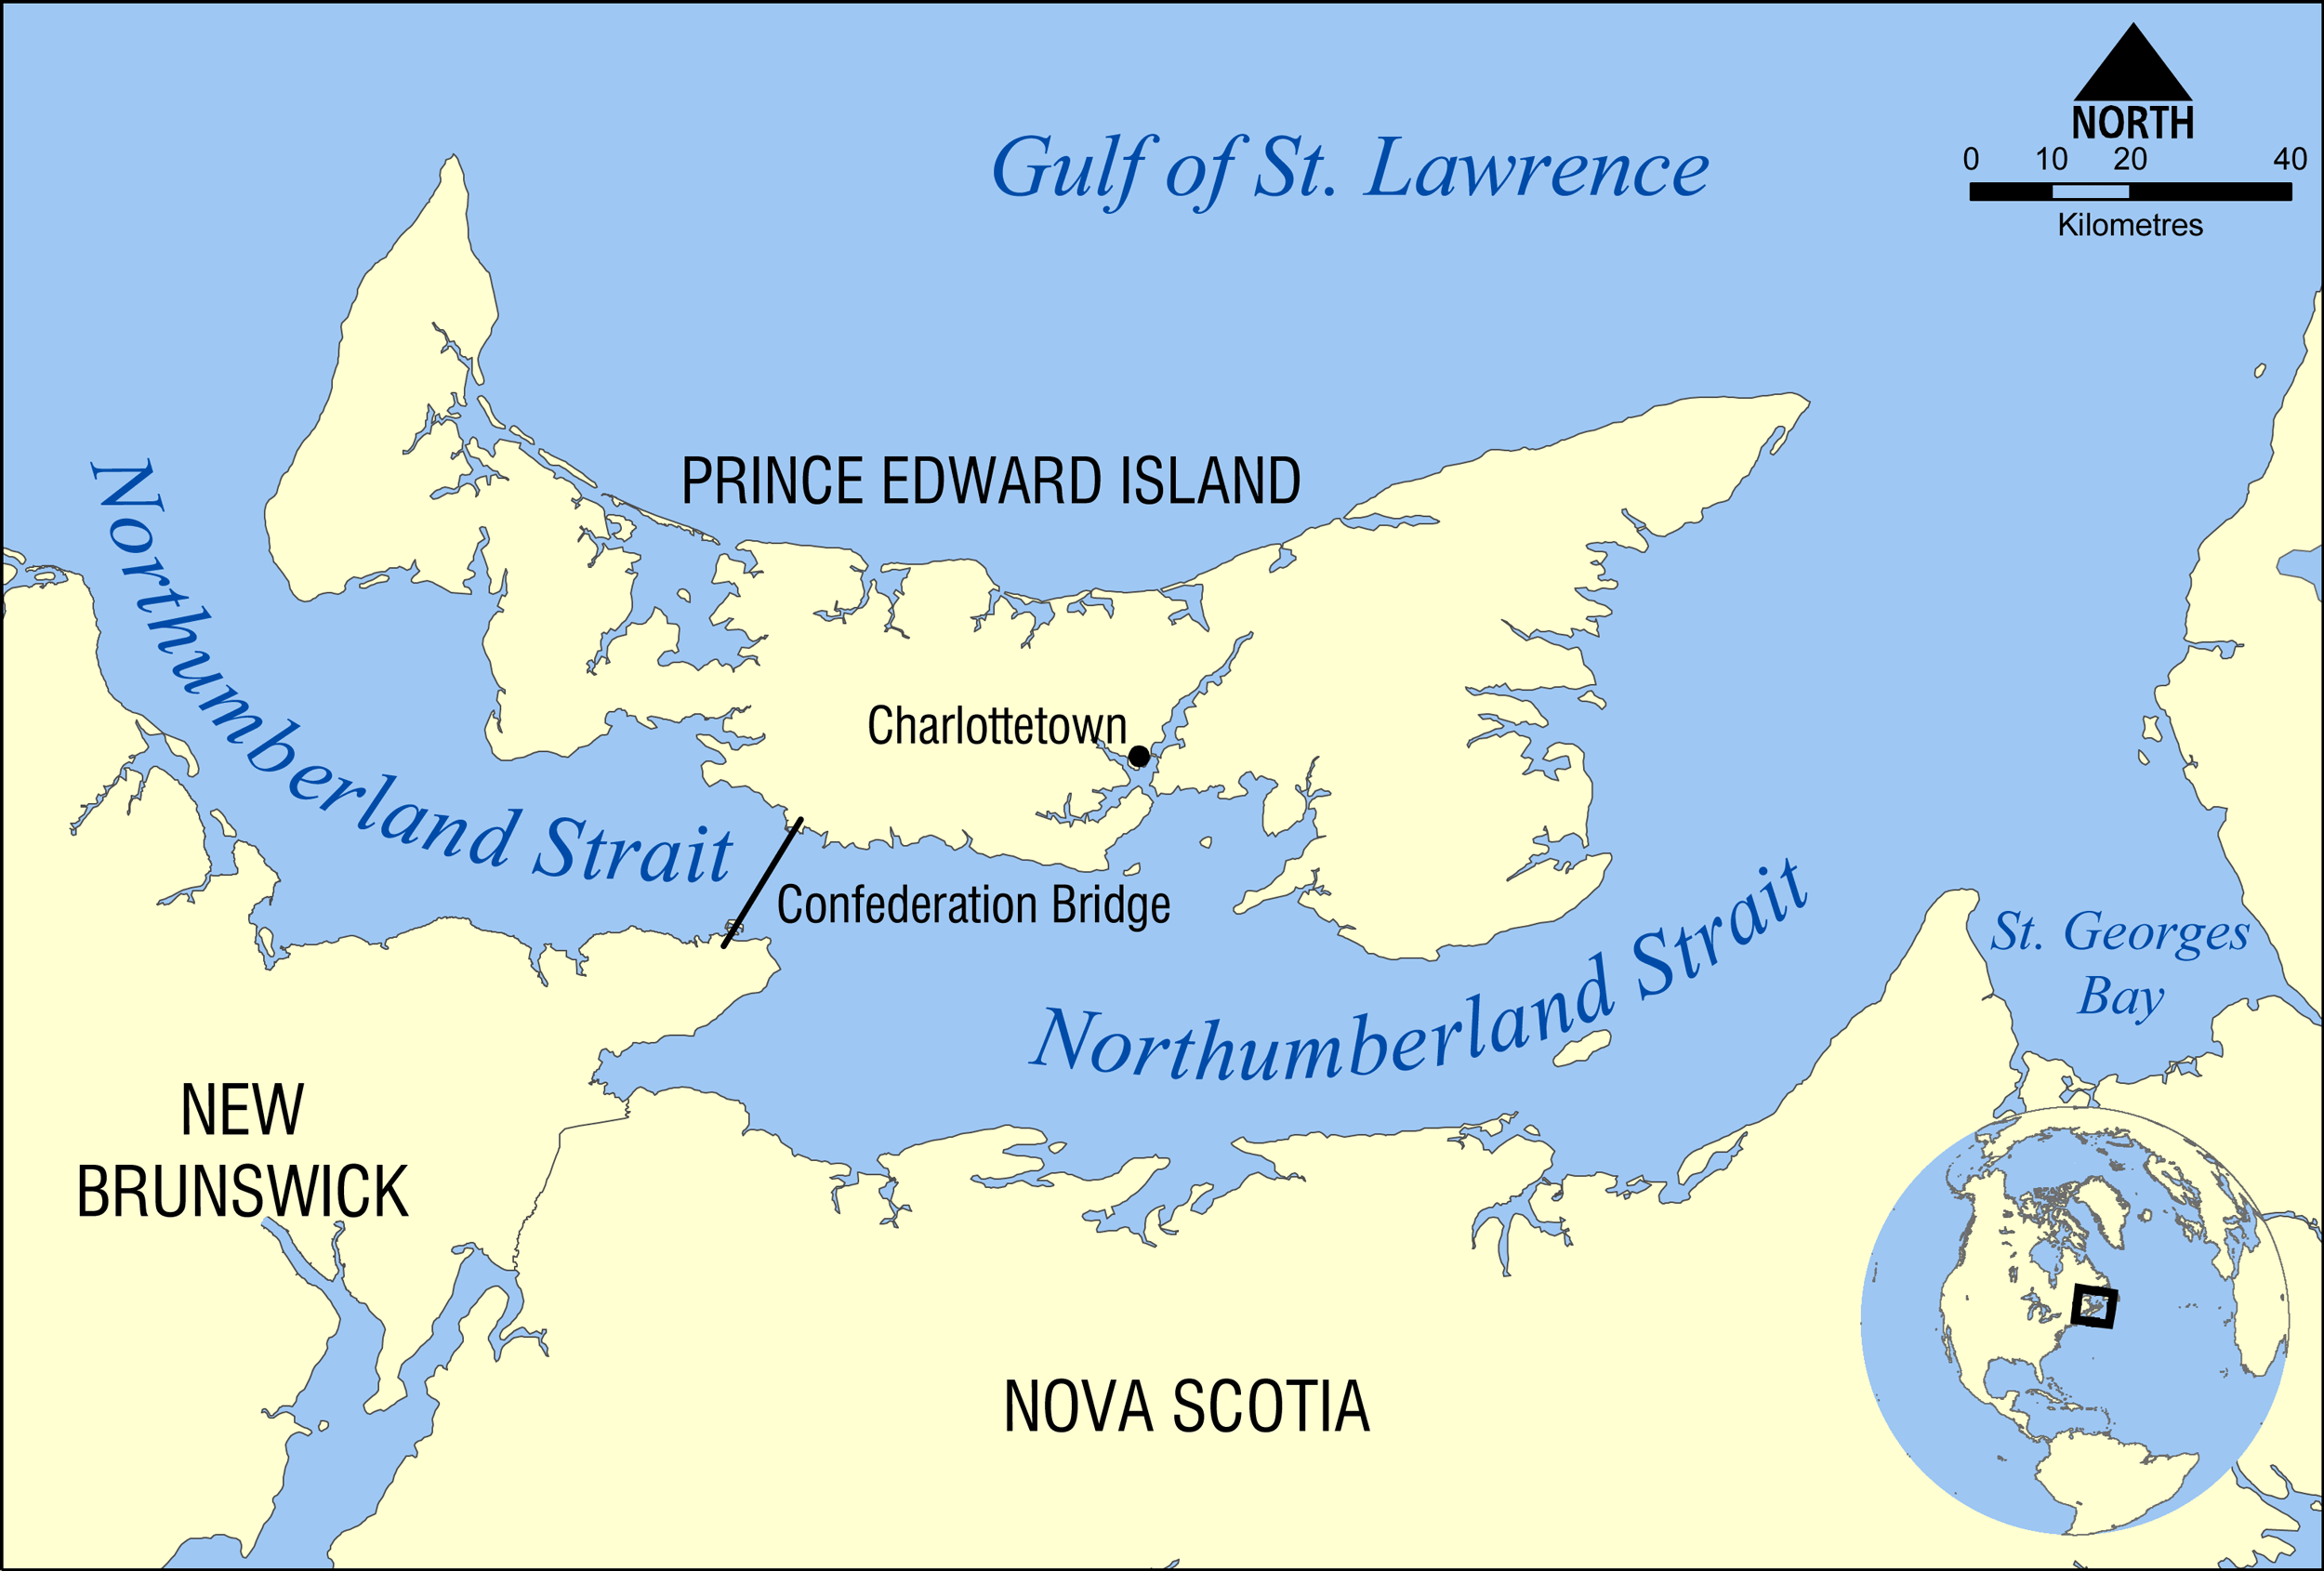 http://upload.wikimedia.org/wikipedia/commons/c/ce/Northumberland_Strait_map.png